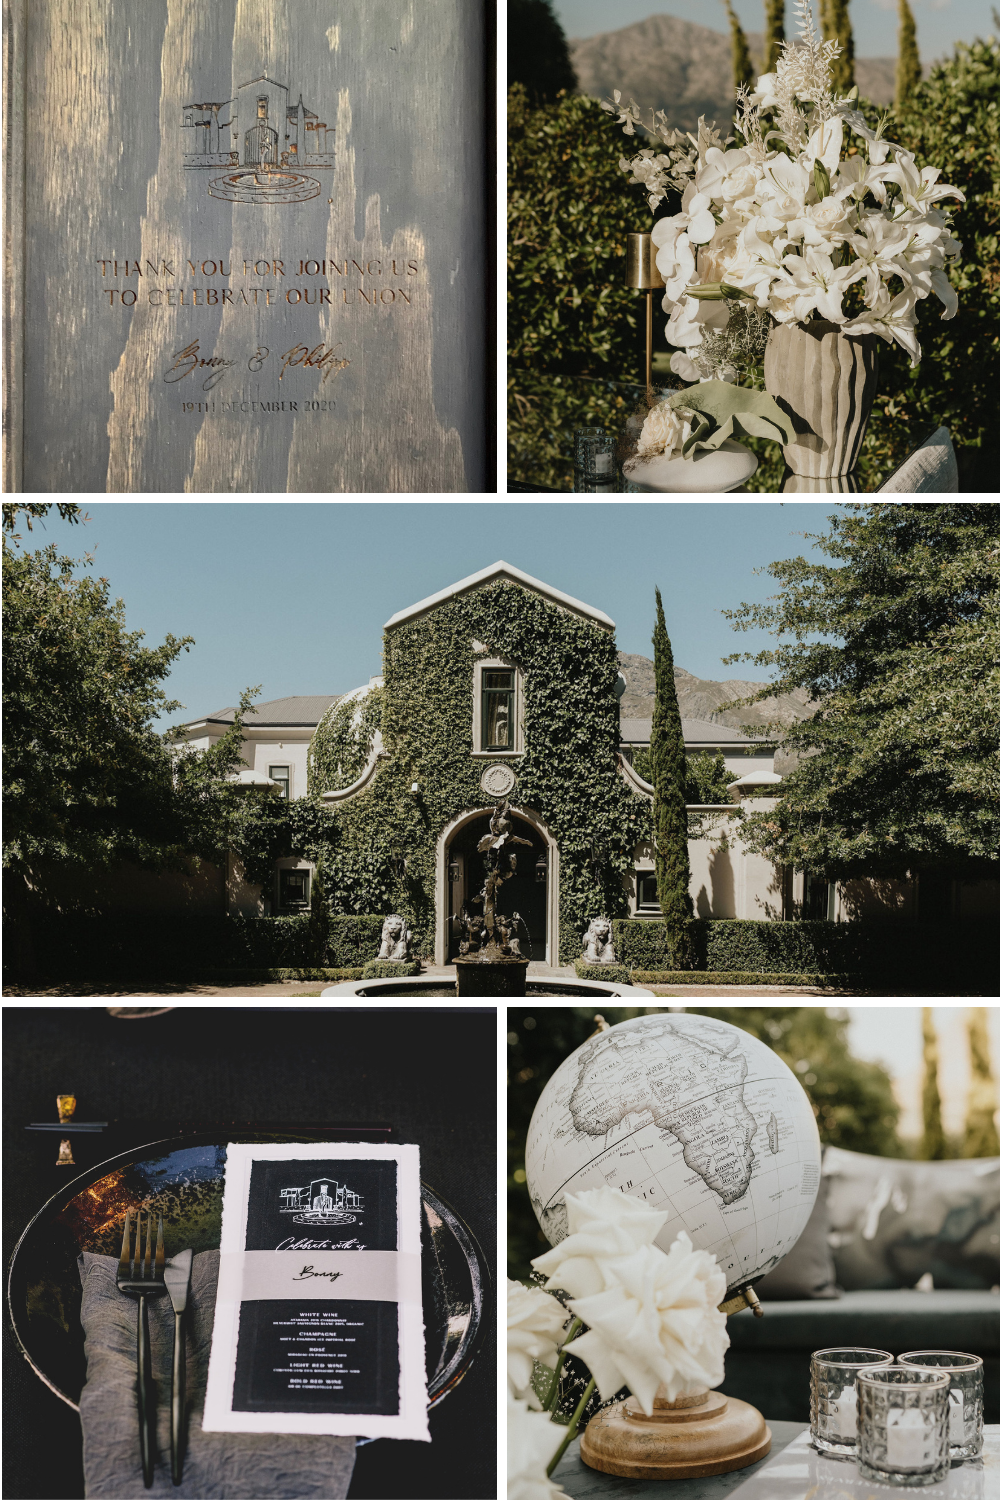 A printed menu, white flowers, exterior of house and wine gift box